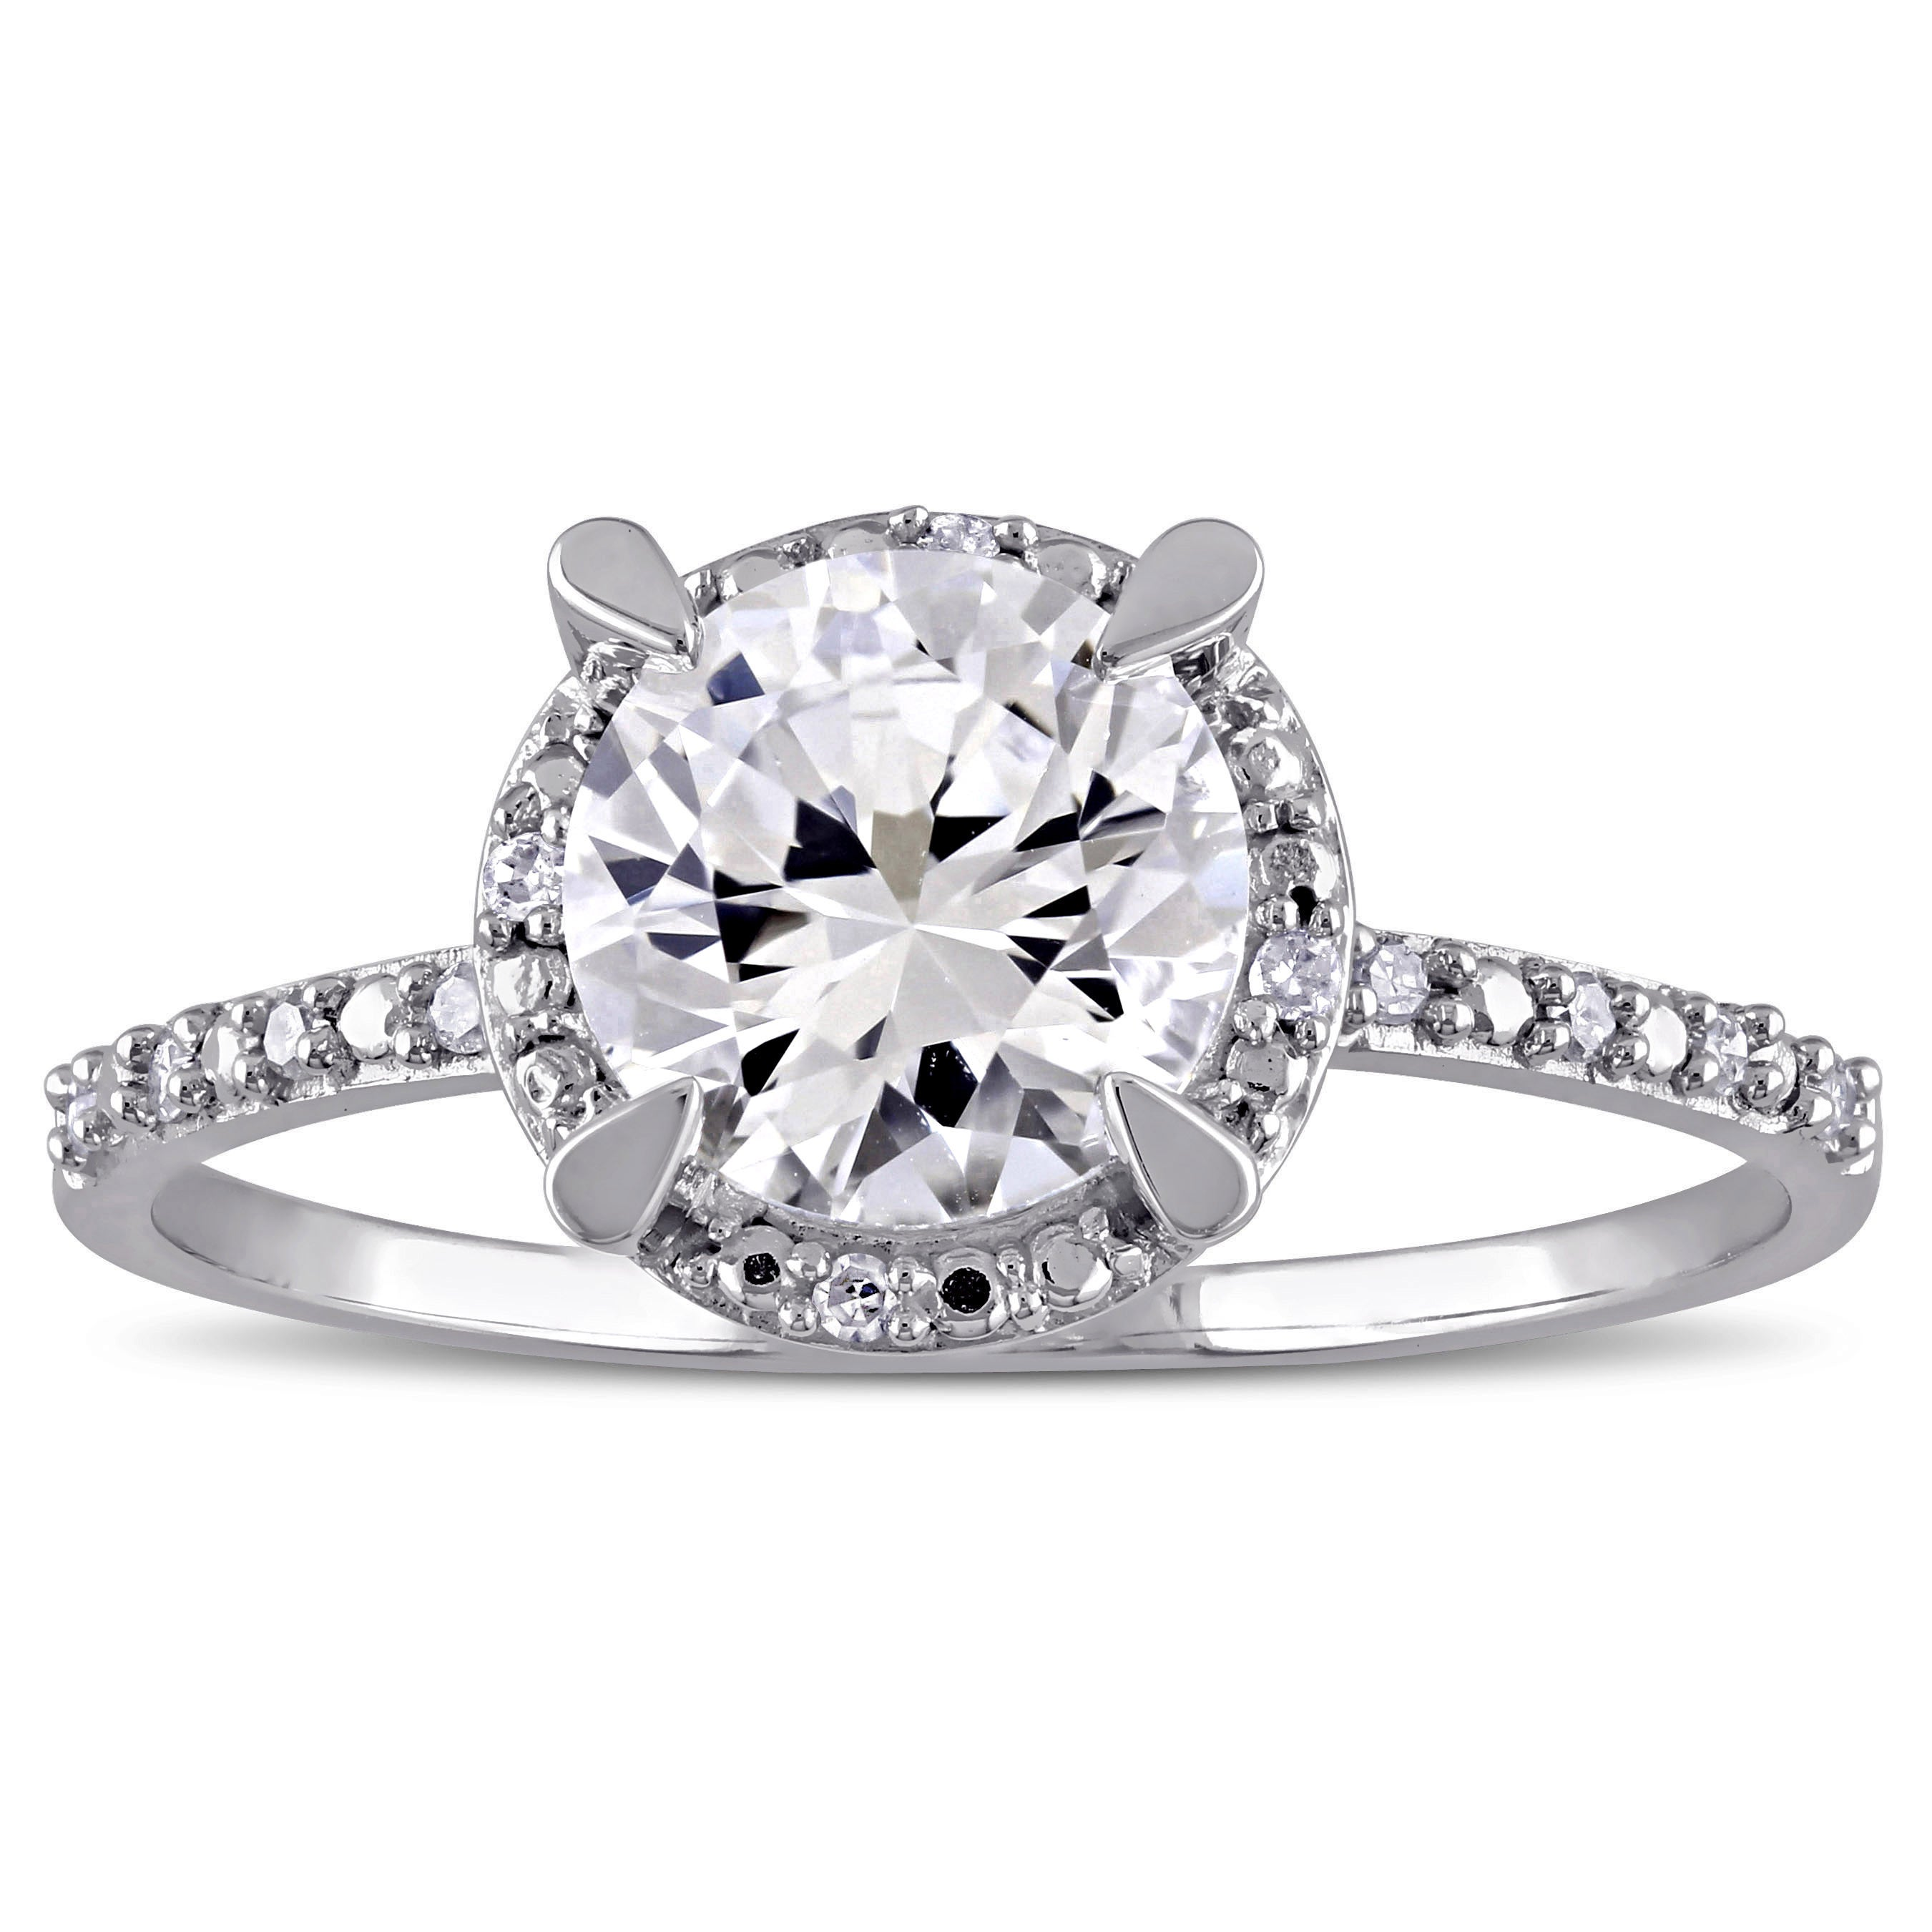 set dazzling products silver sapphire sterling ring white interchangeable wedding created